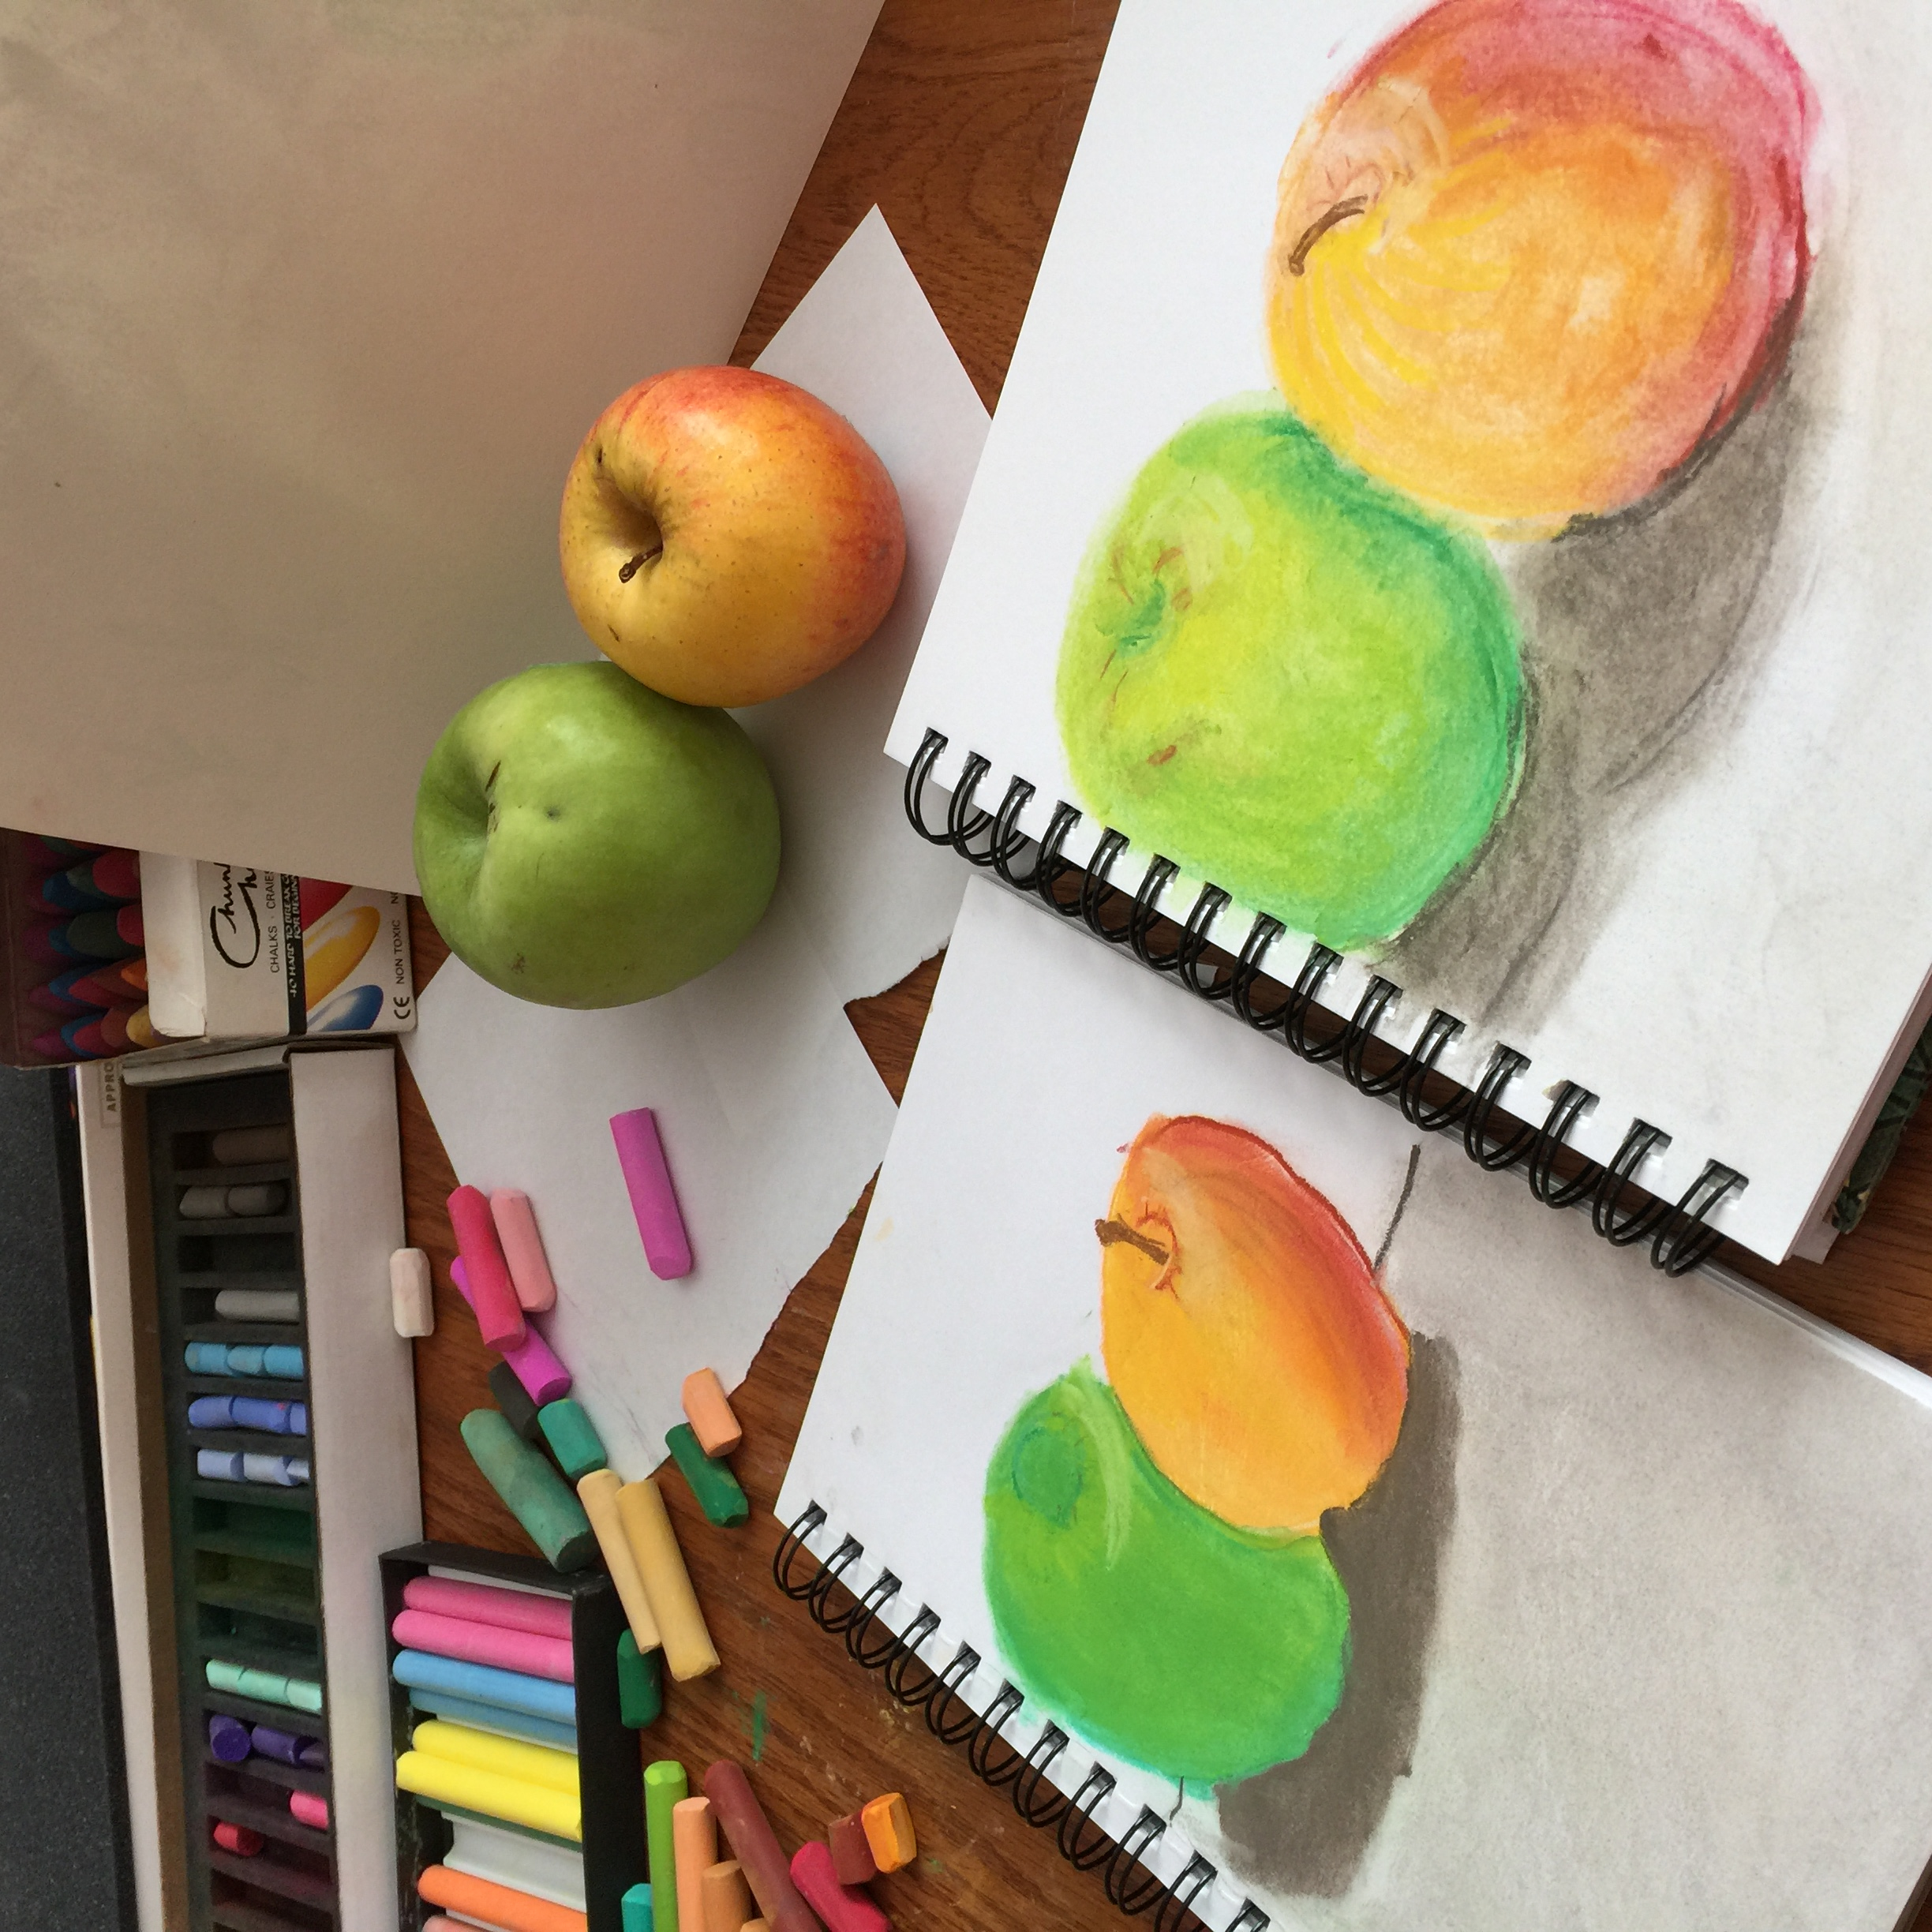 shading apples